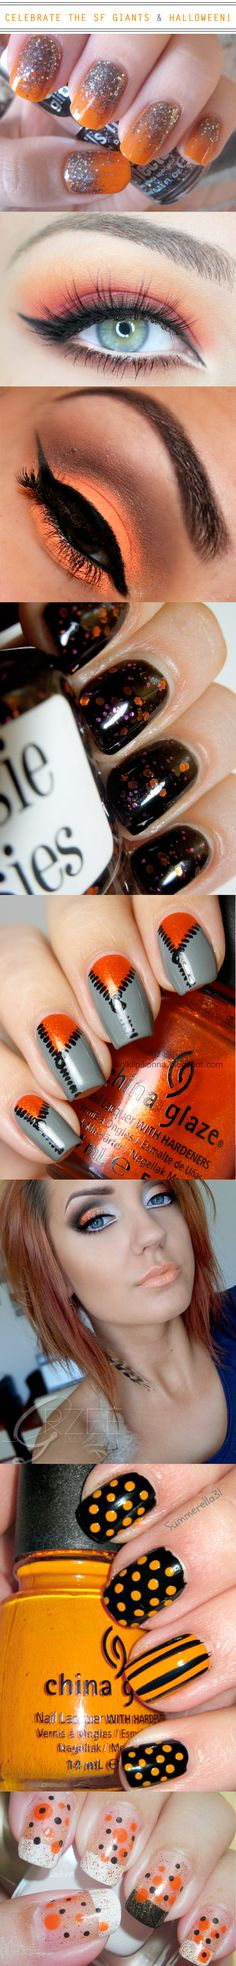 If Buster Posey Painted His Nails for the Giants Parade, This is How They'd Look